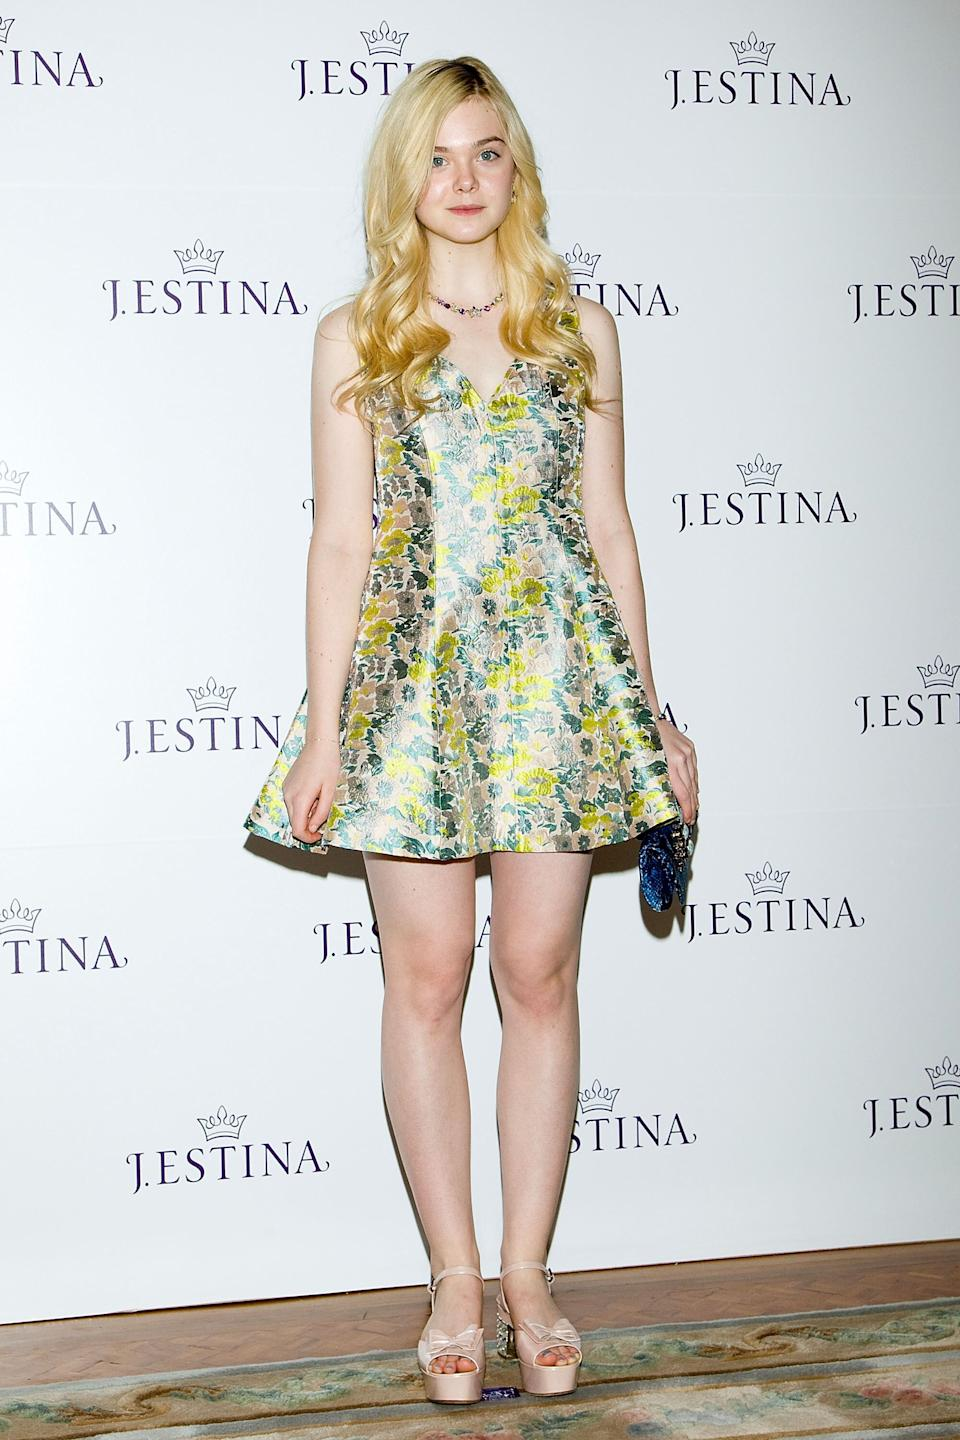 Fanning at a promotional event for the 2013 J.ESTINA SS presentation at Shilla Hotel in Seoul, South Korea.